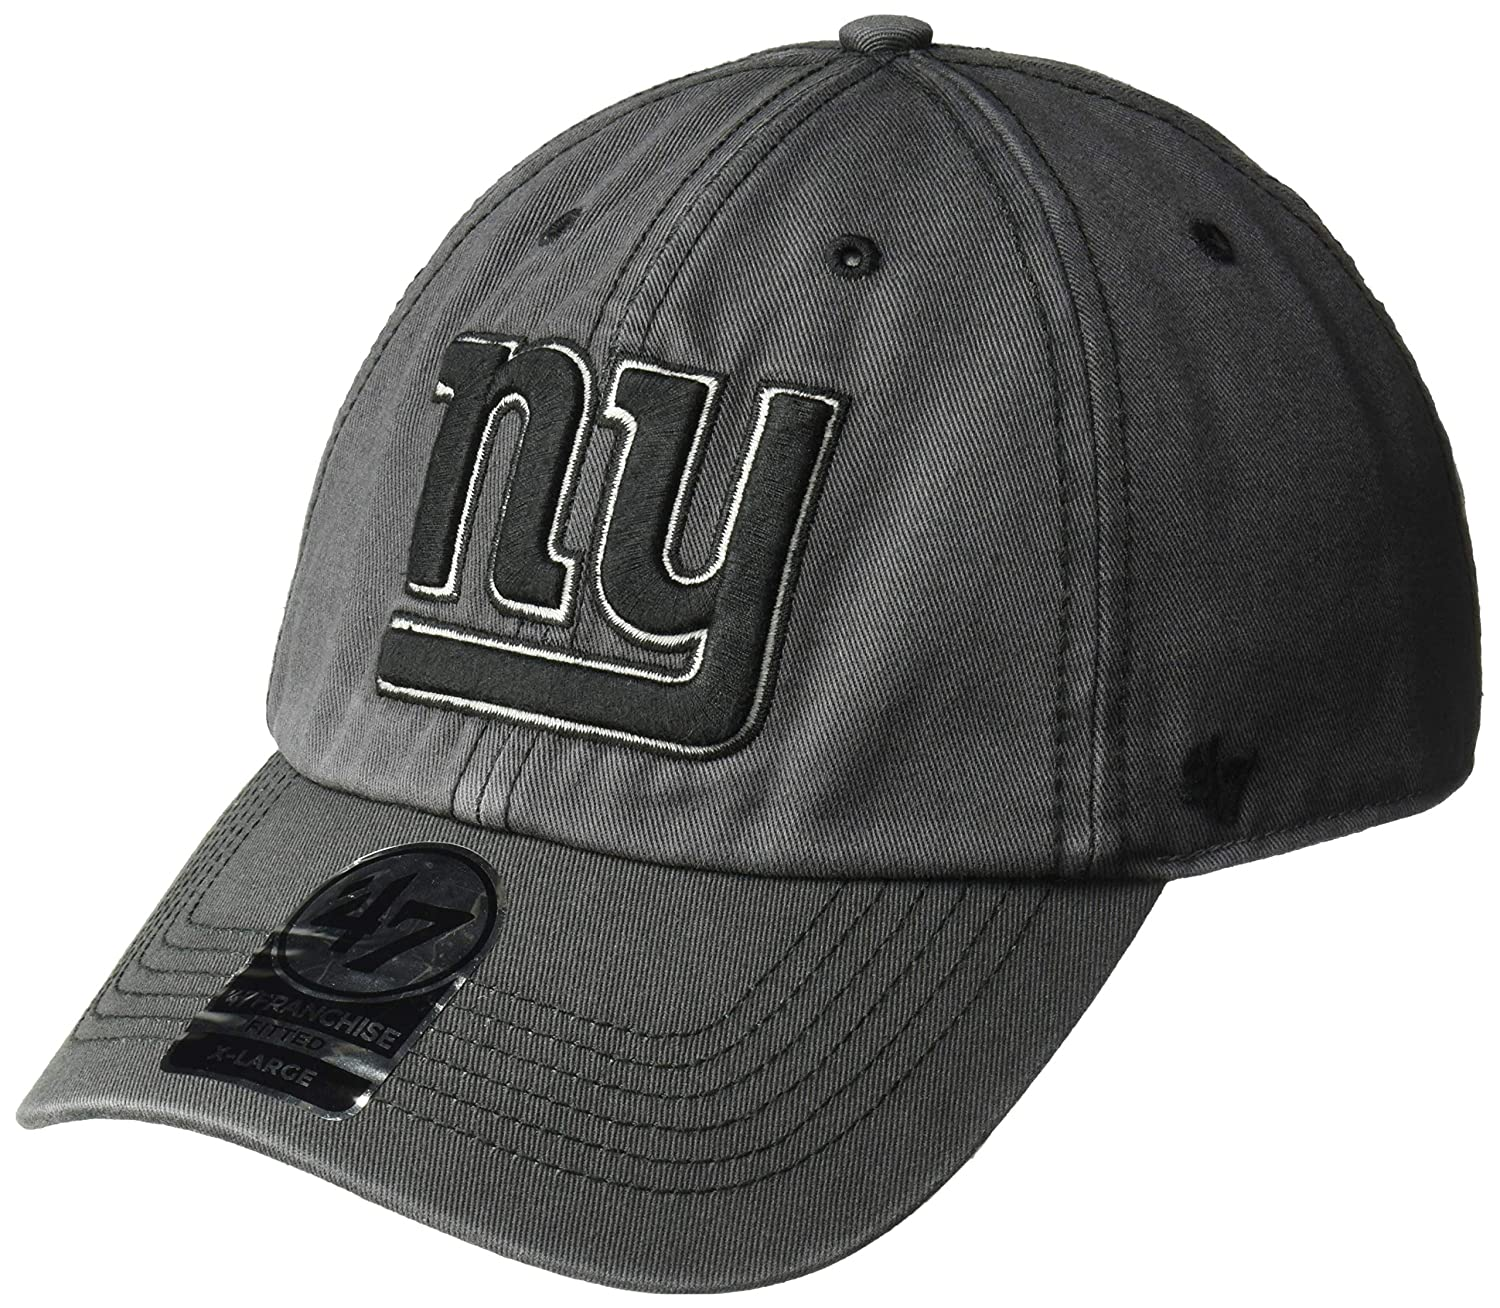 c73f6d4fb8e8ca Amazon.com : '47 NFL New York Giants Sachem Franchise Fitted Hat, Medium,  Charcoal : Sports & Outdoors